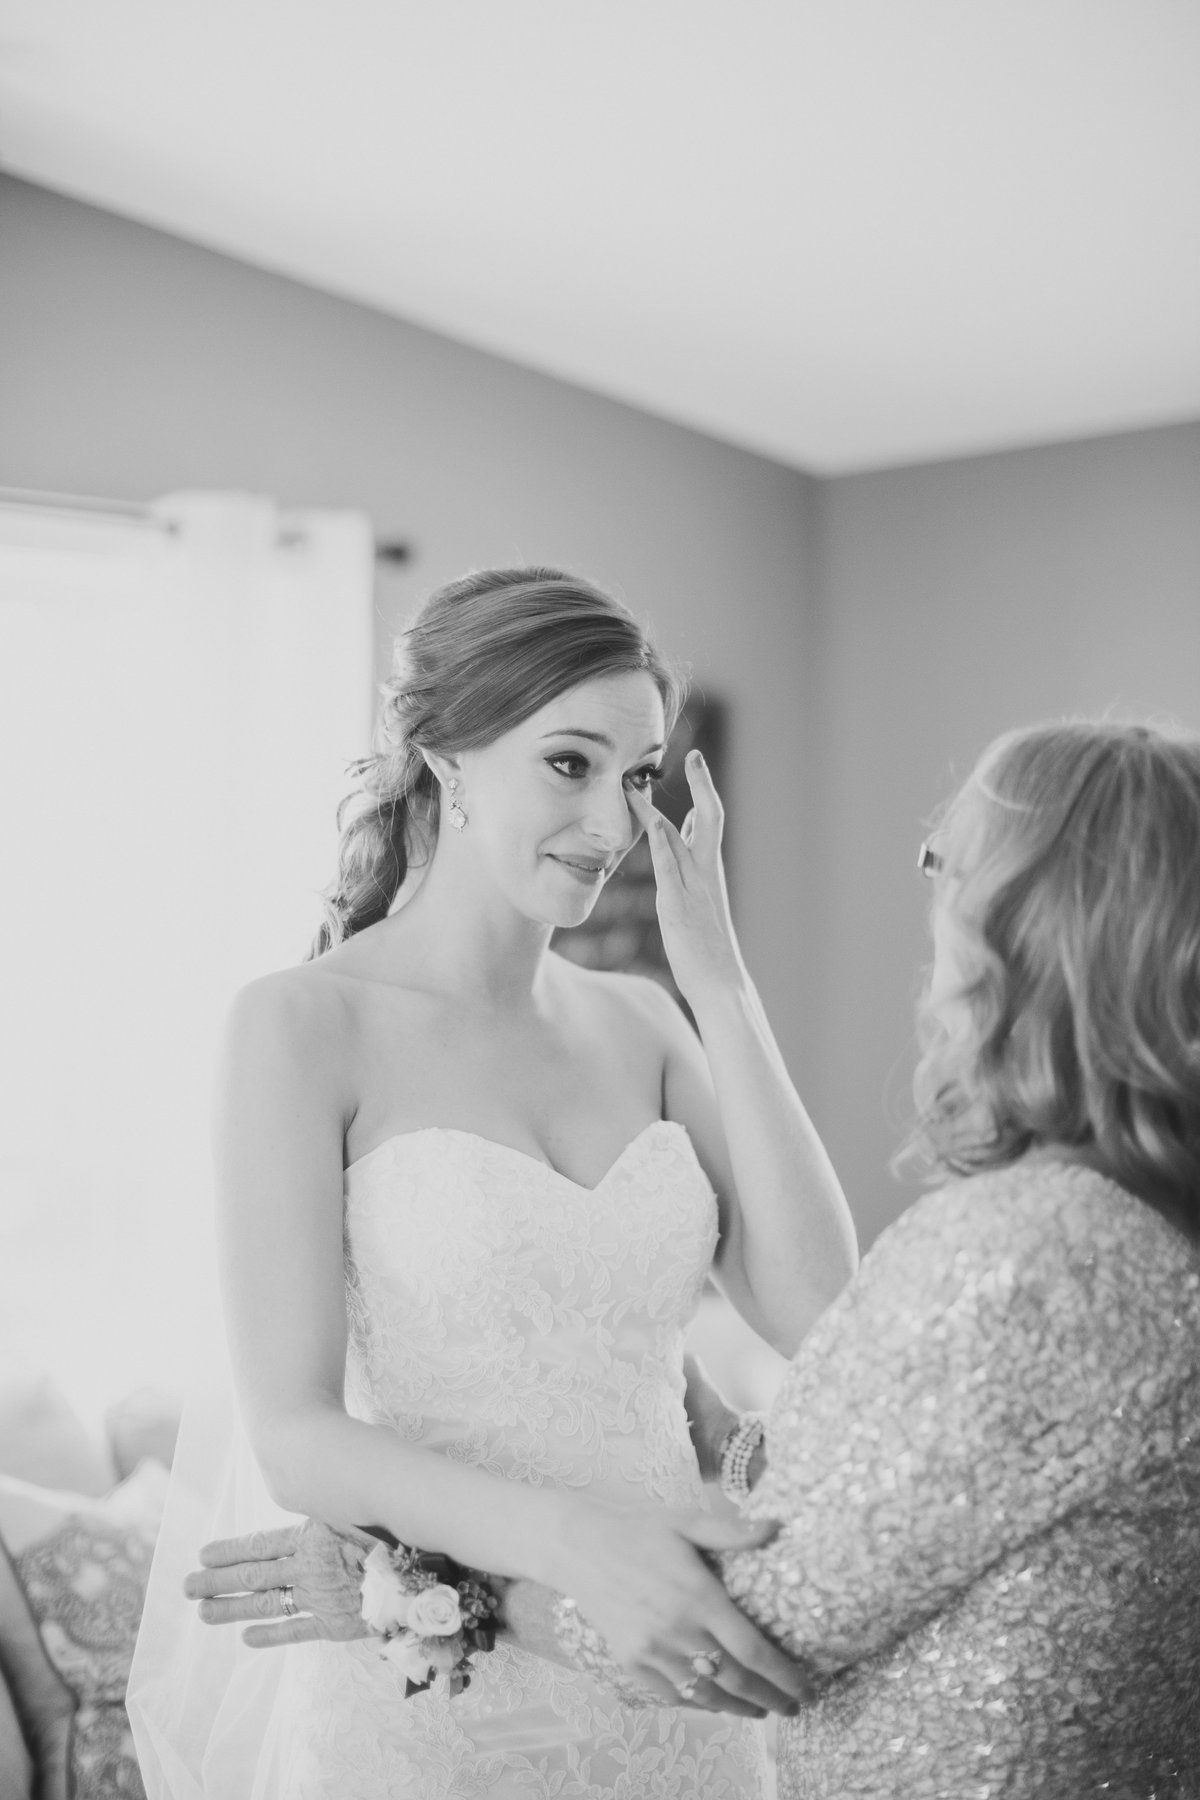 LisaZach_GettingReady_MissouriBackyardWeddingPhotography_CatherineRhodesPhotography (160 of 202)-Edit